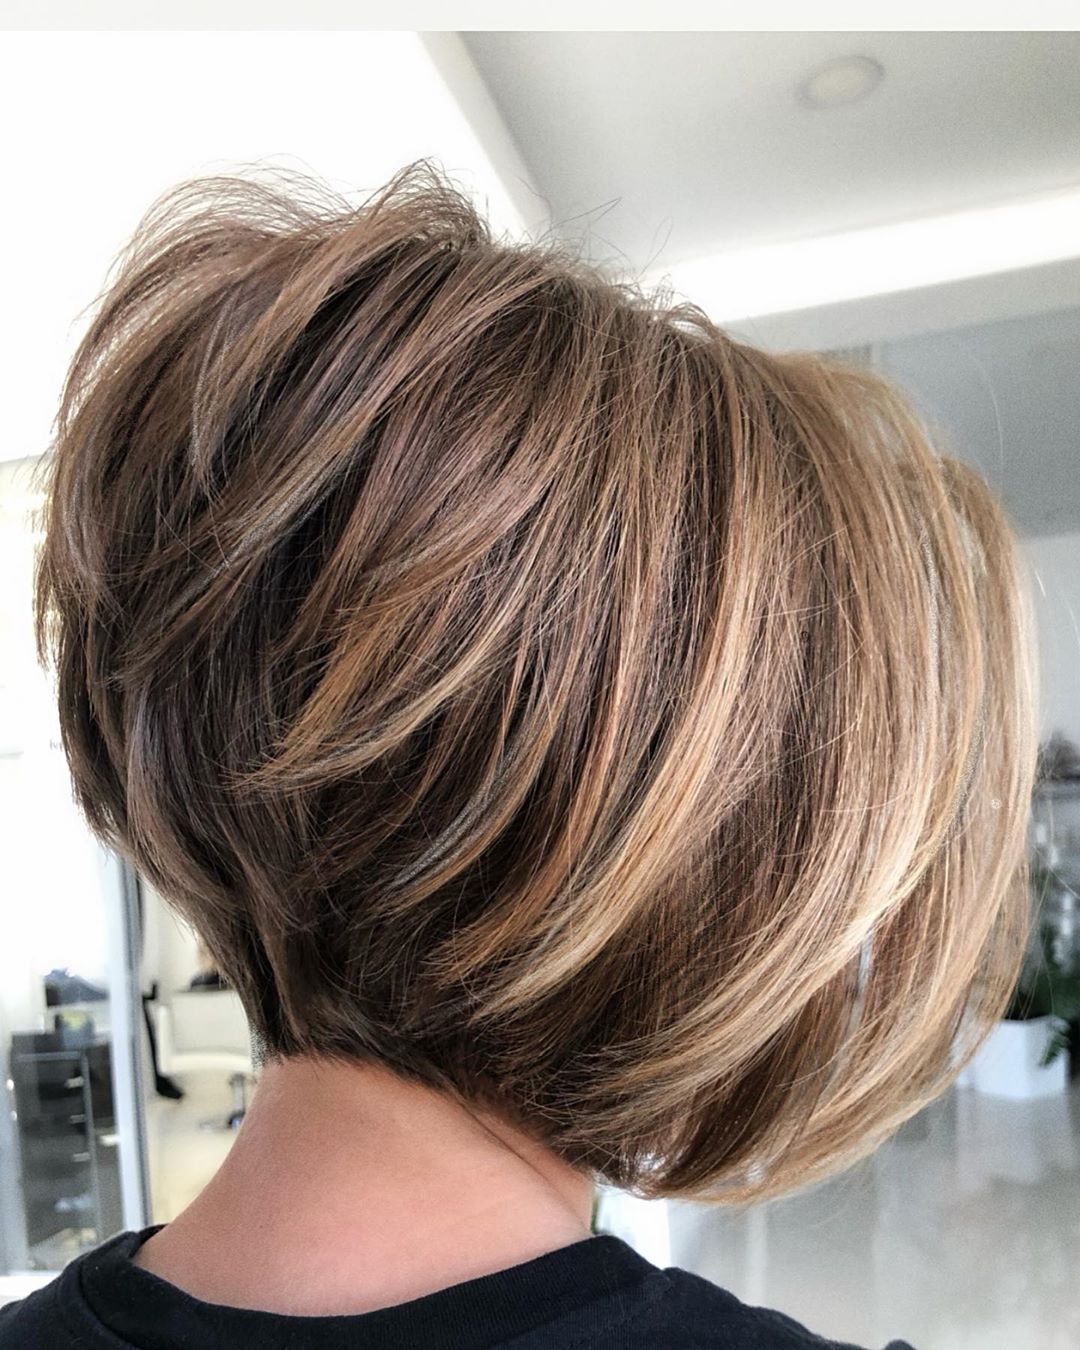 50 Inverted Bob Haircuts Women Are Asking For in 2